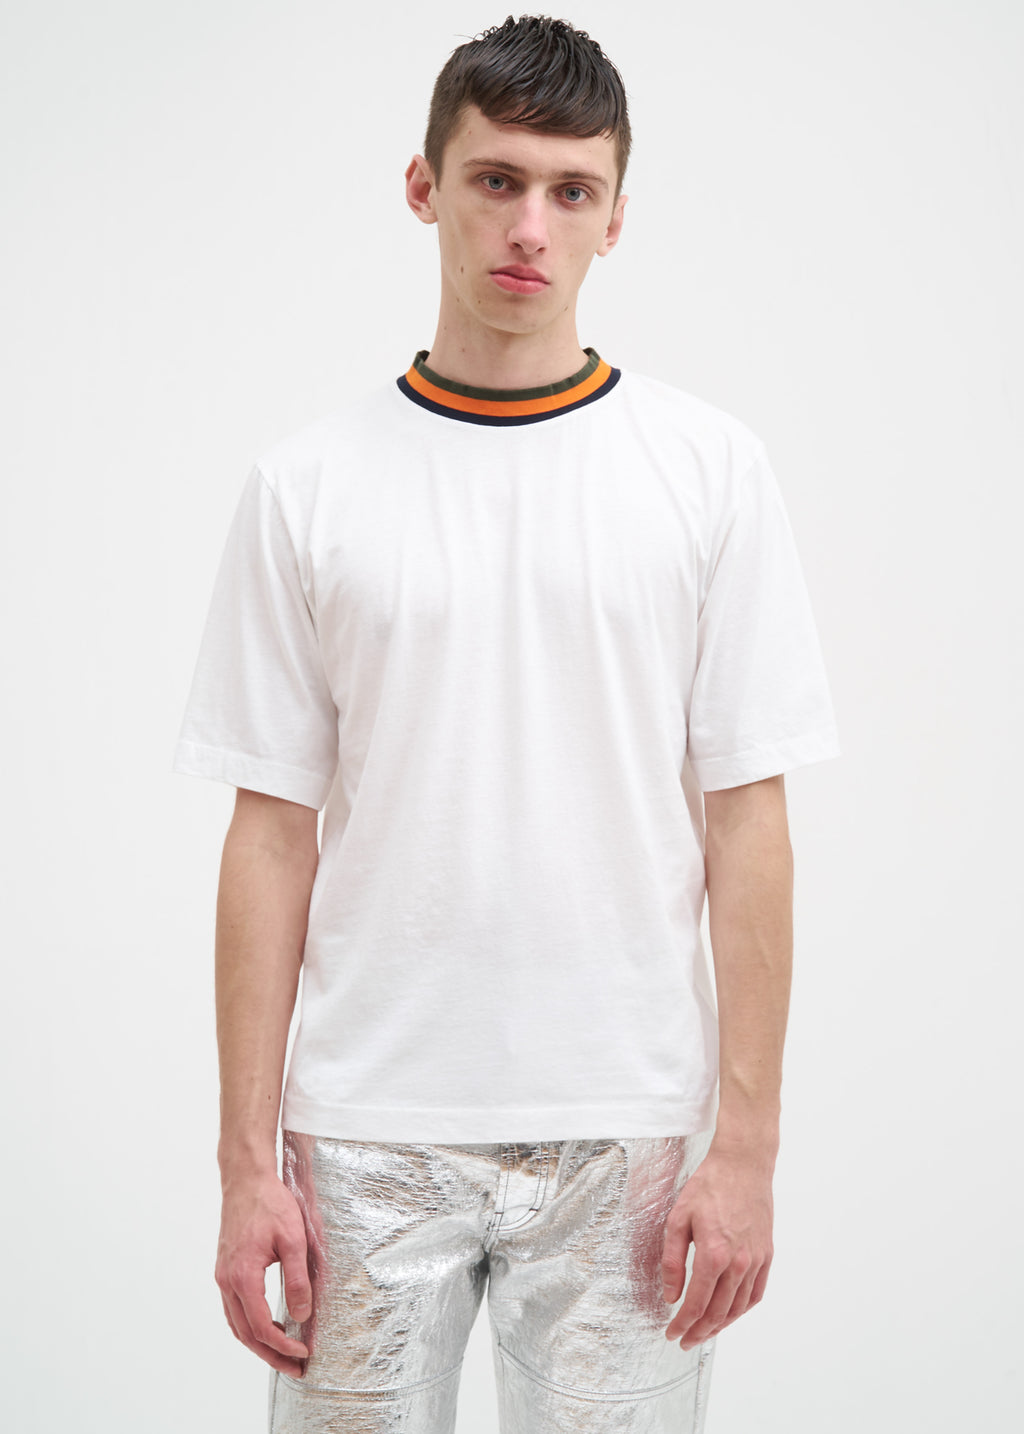 Etudes, White Signature Contrast T-Shirt, 017 Shop